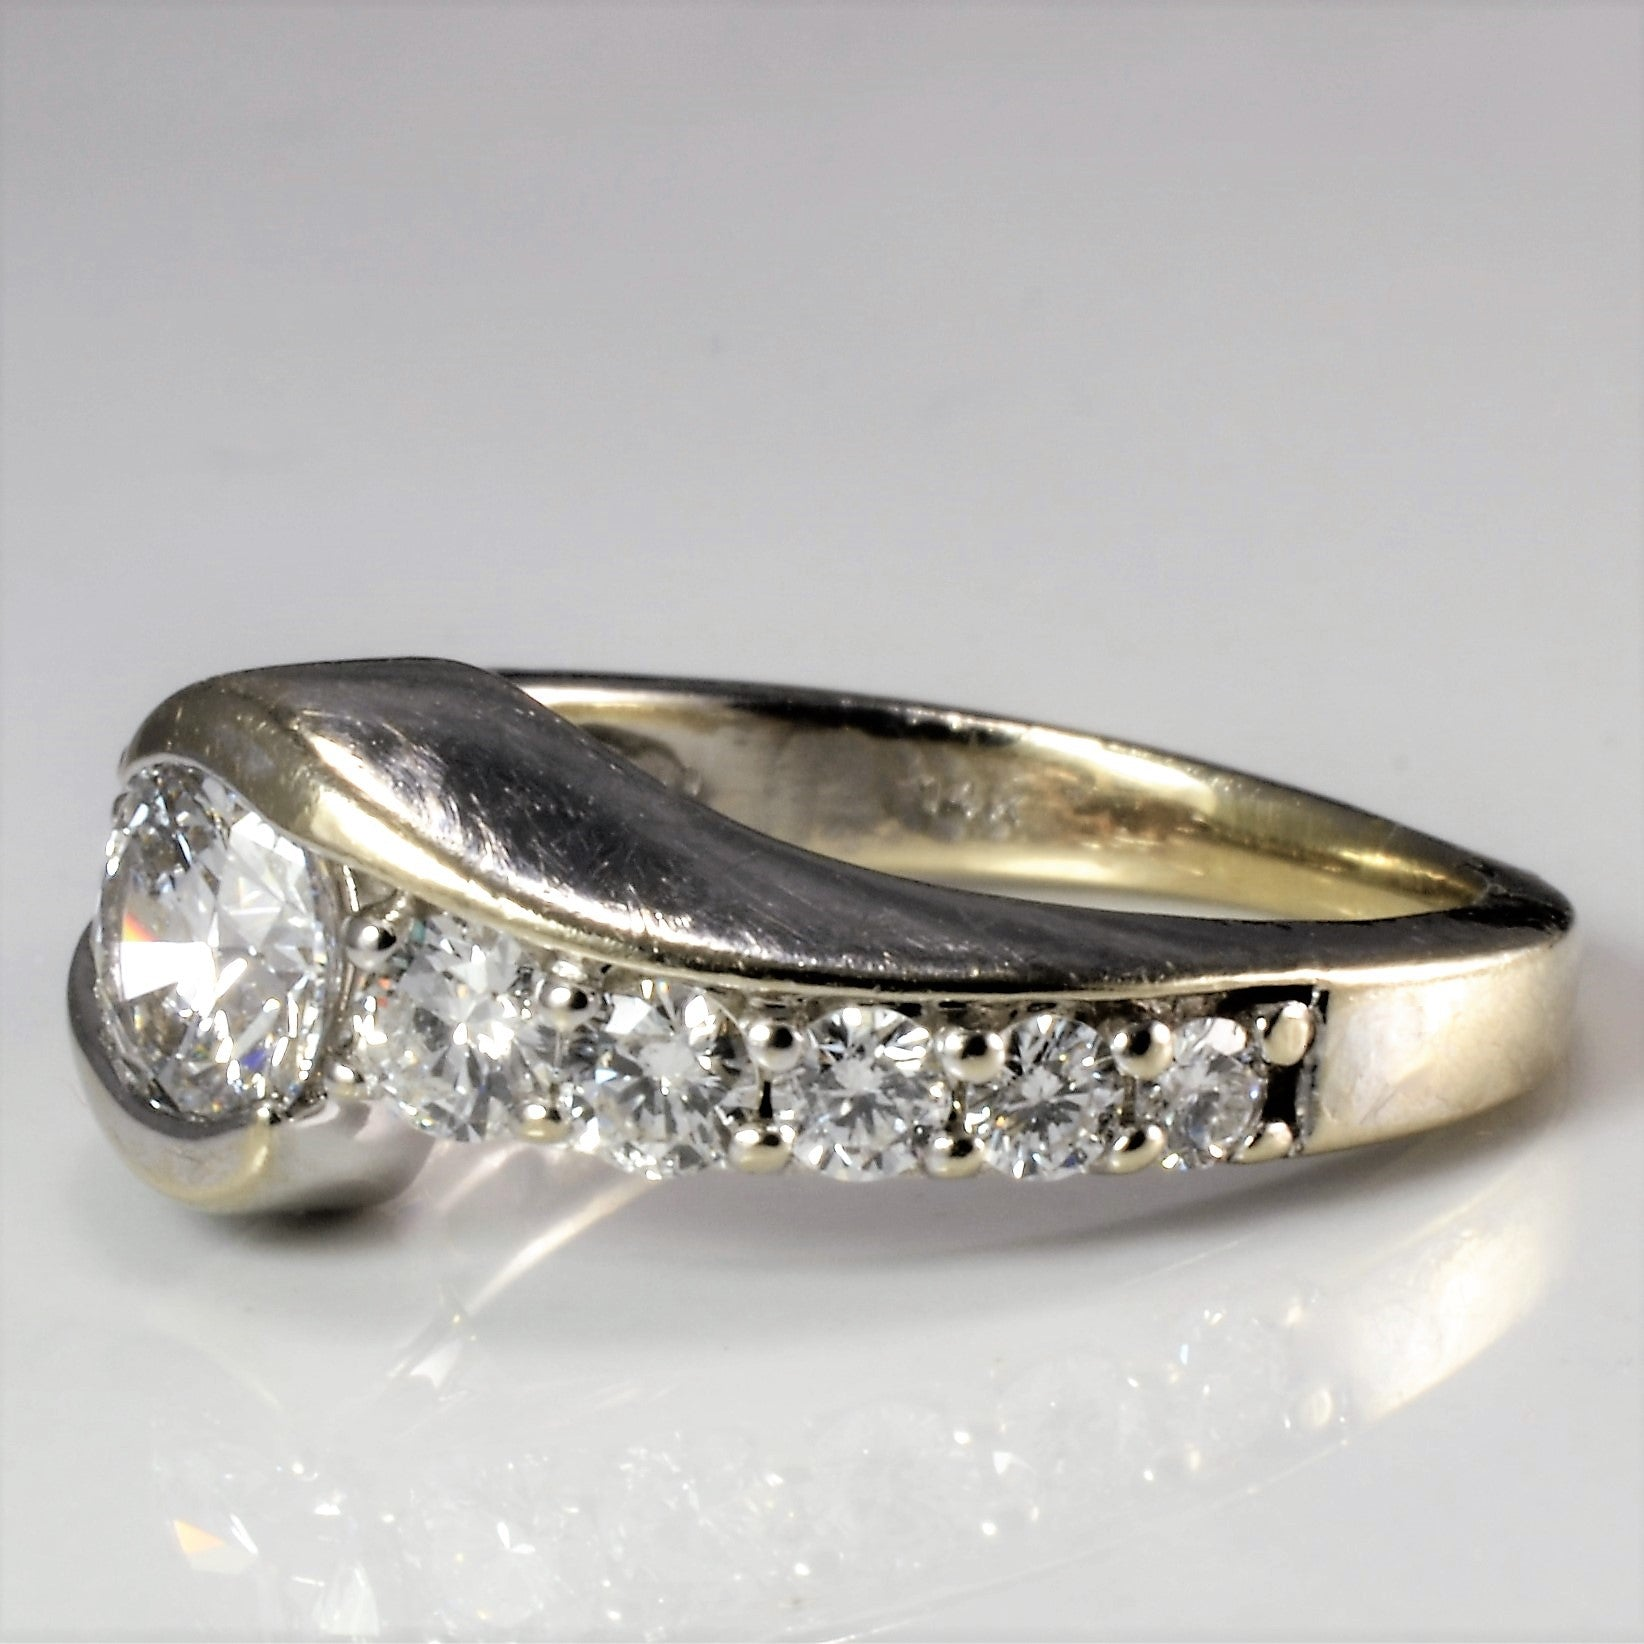 Bypass Pave Diamond Engagement Ring | 0.90 ctw, SZ 4.25 |